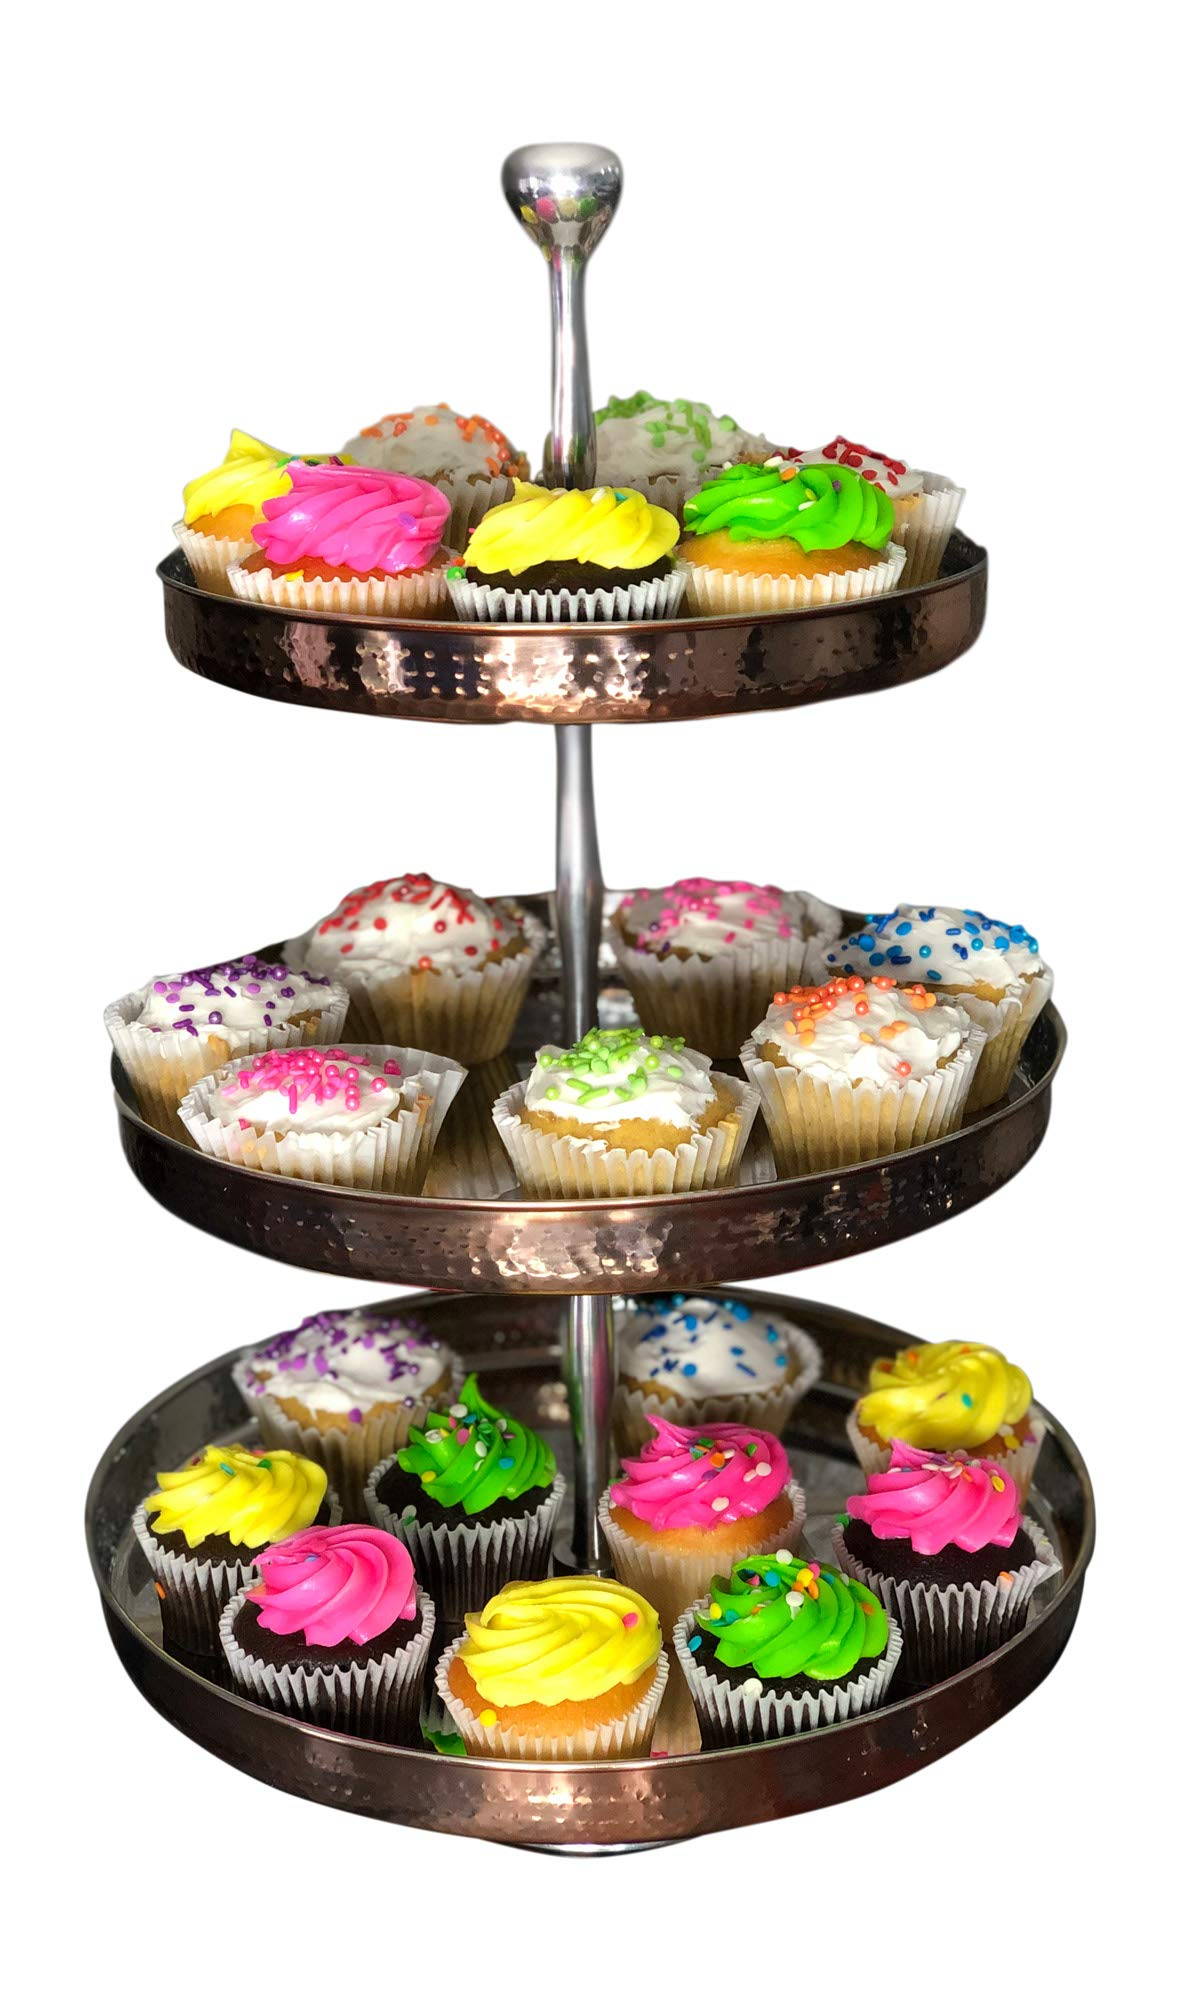 Cupcake Stand Tiered Serving Tray for Cake Dessert Fruit Display Platter by SEVENM (Copper/Silver - 3 Tier)